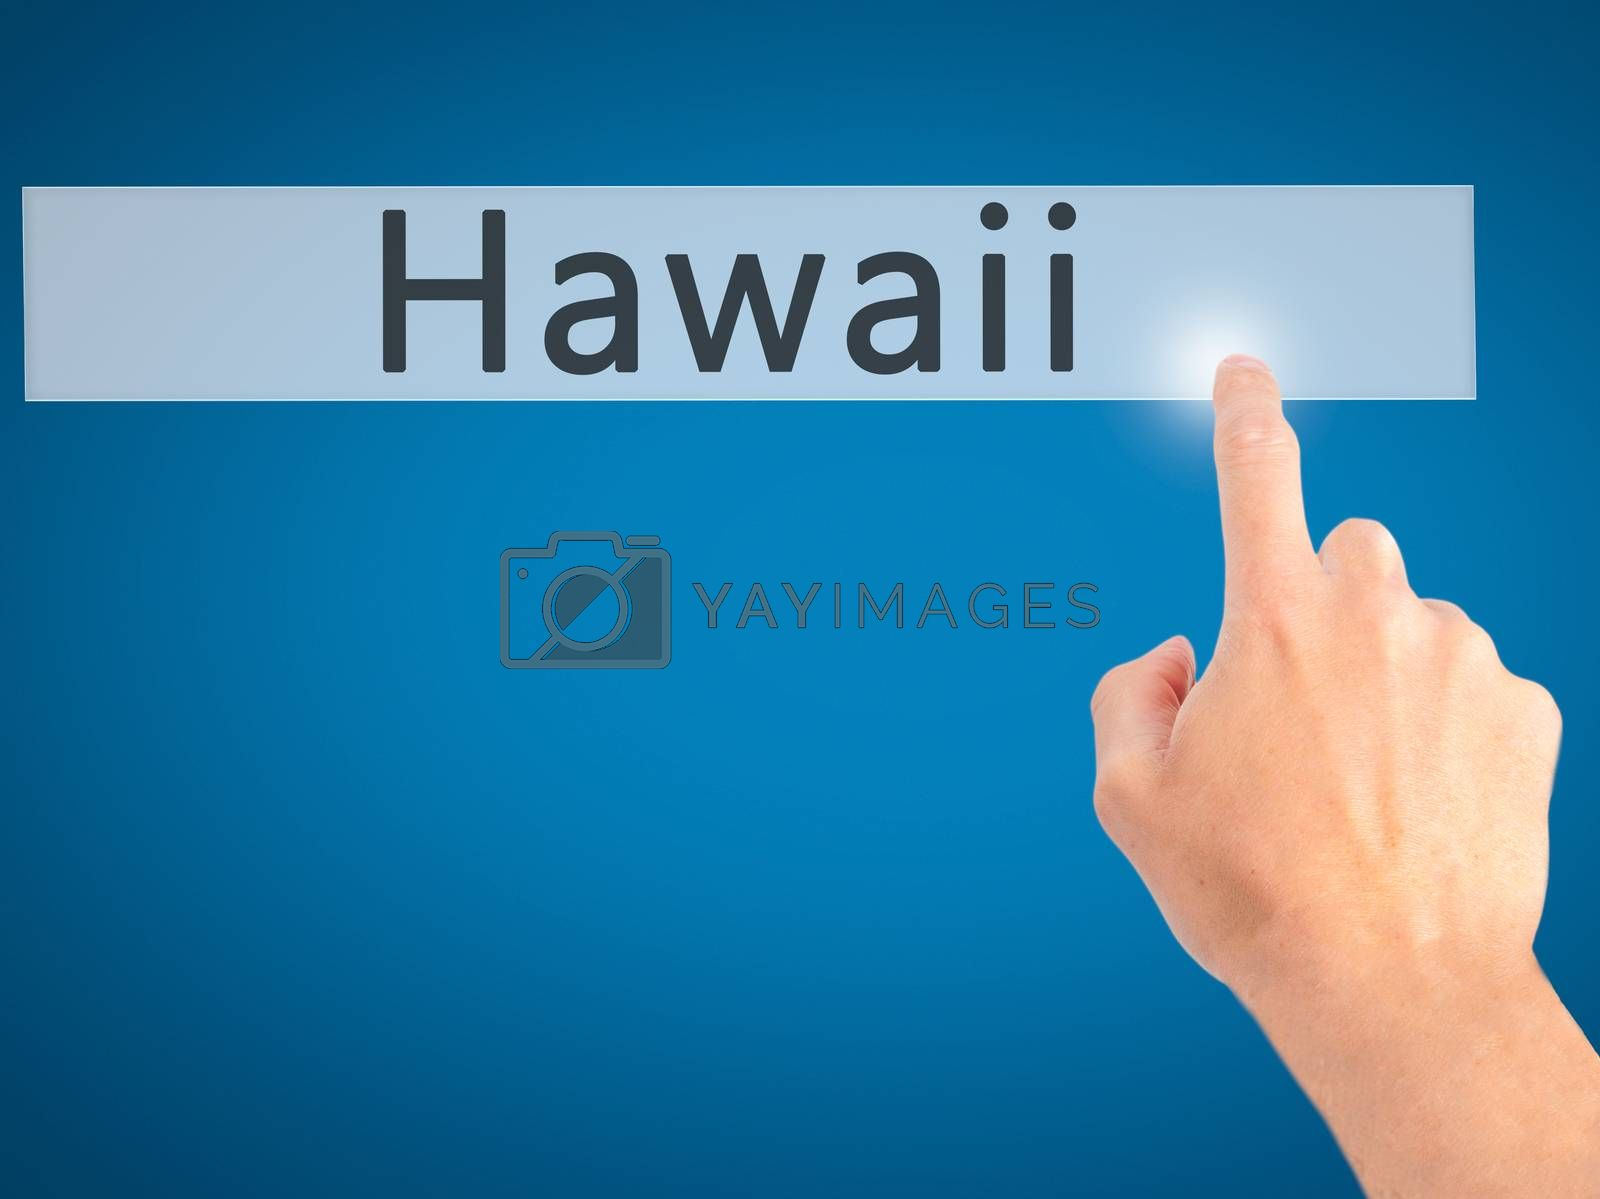 Hawaii - Hand pressing a button on blurred background concept on by jackald